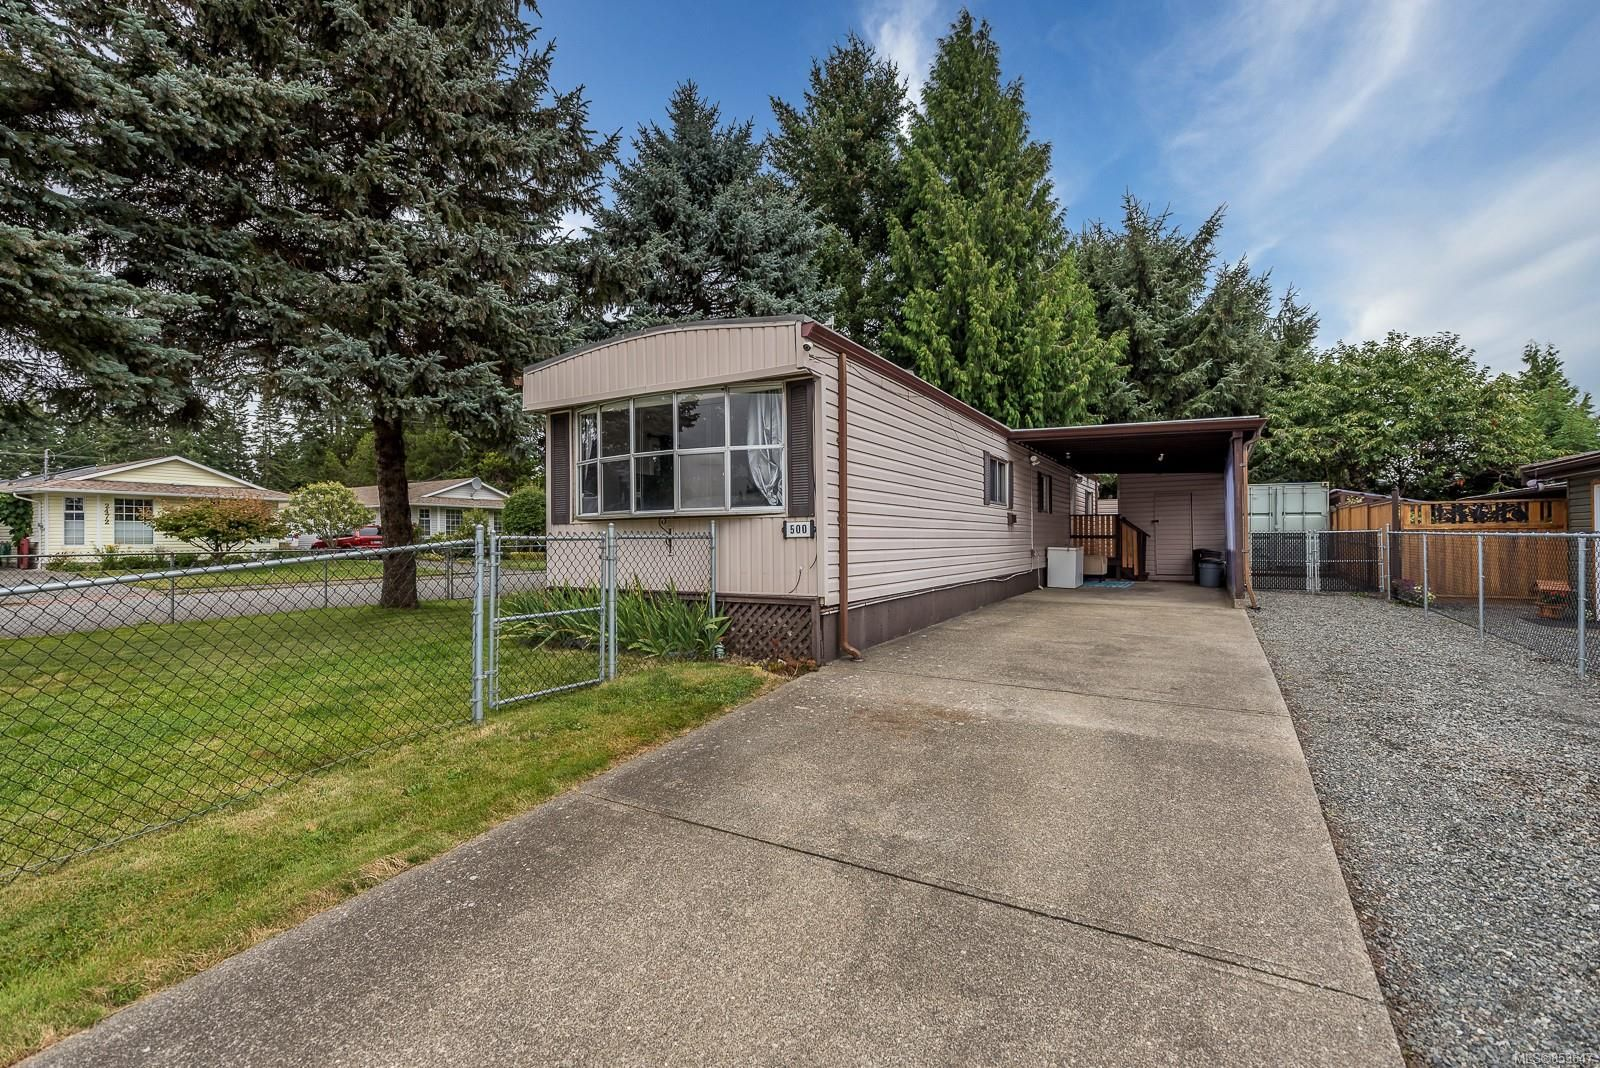 Main Photo: 500 Nechako Ave in : CV Courtenay East House for sale (Comox Valley)  : MLS®# 853647